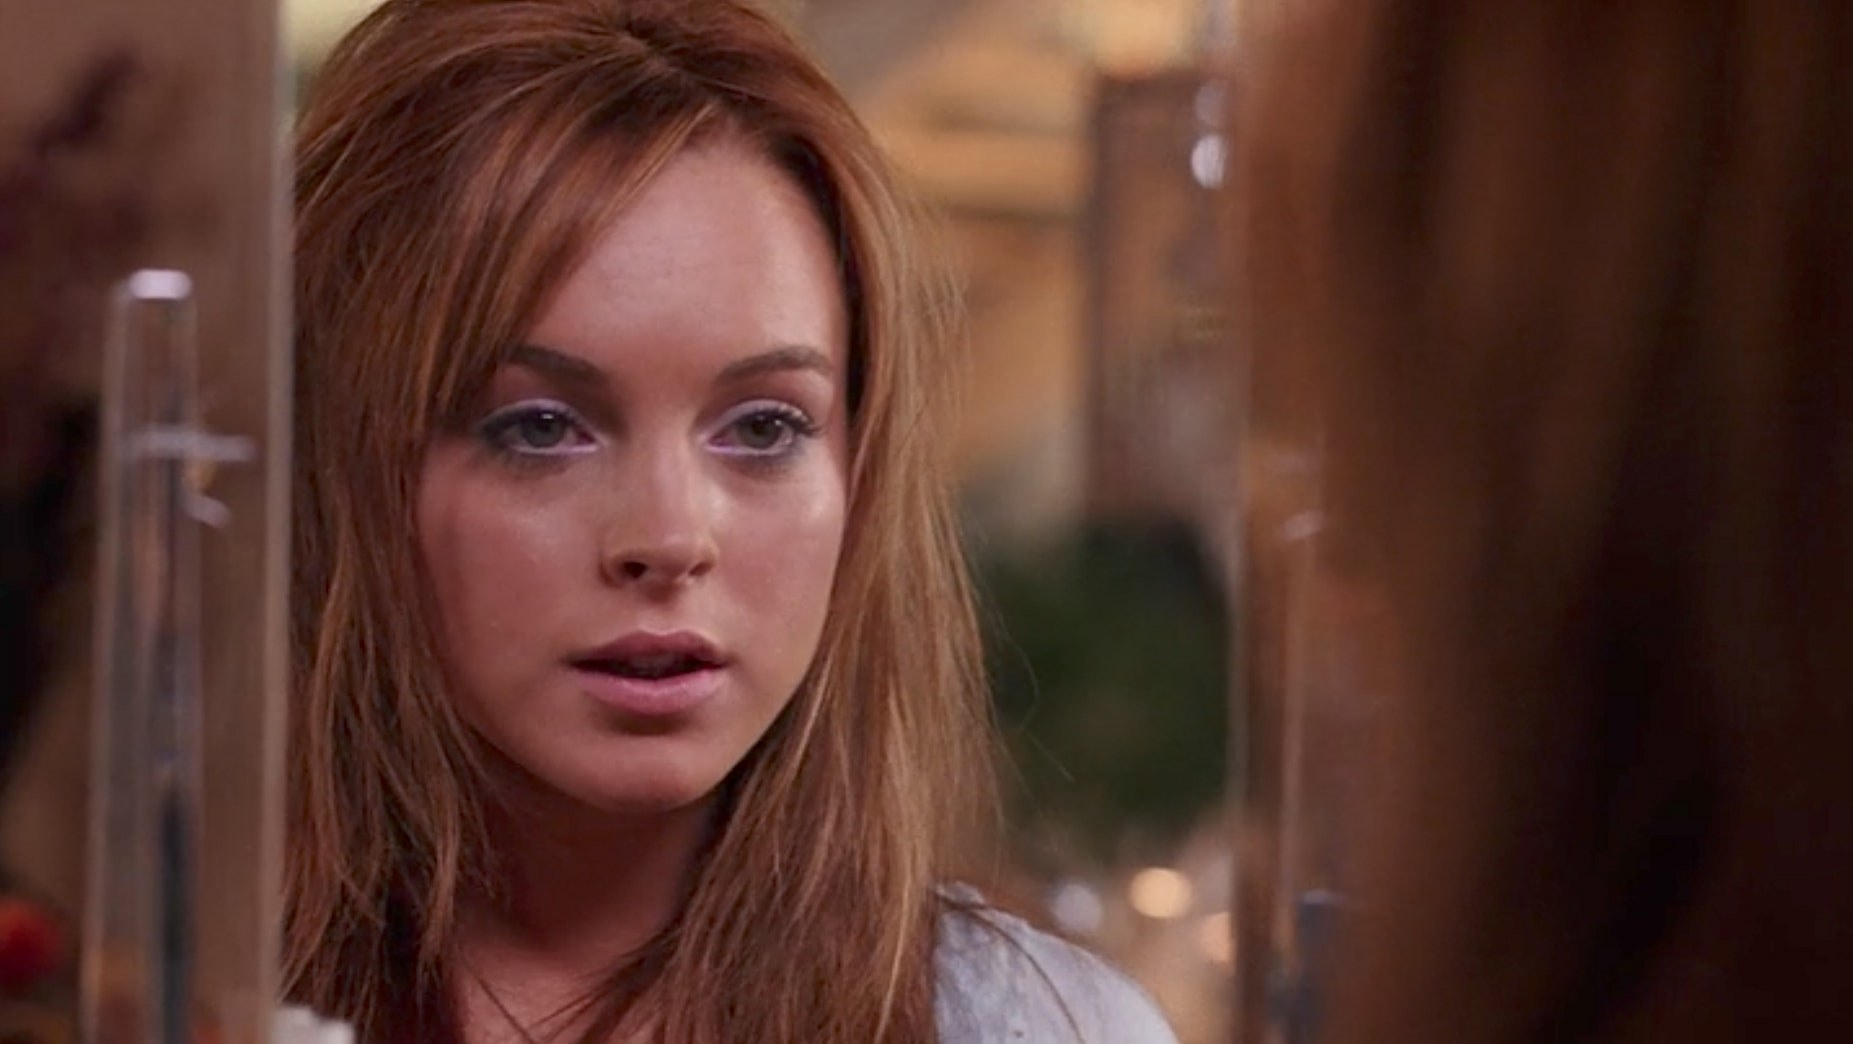 Cady with light pink eyeshadow and lipstick